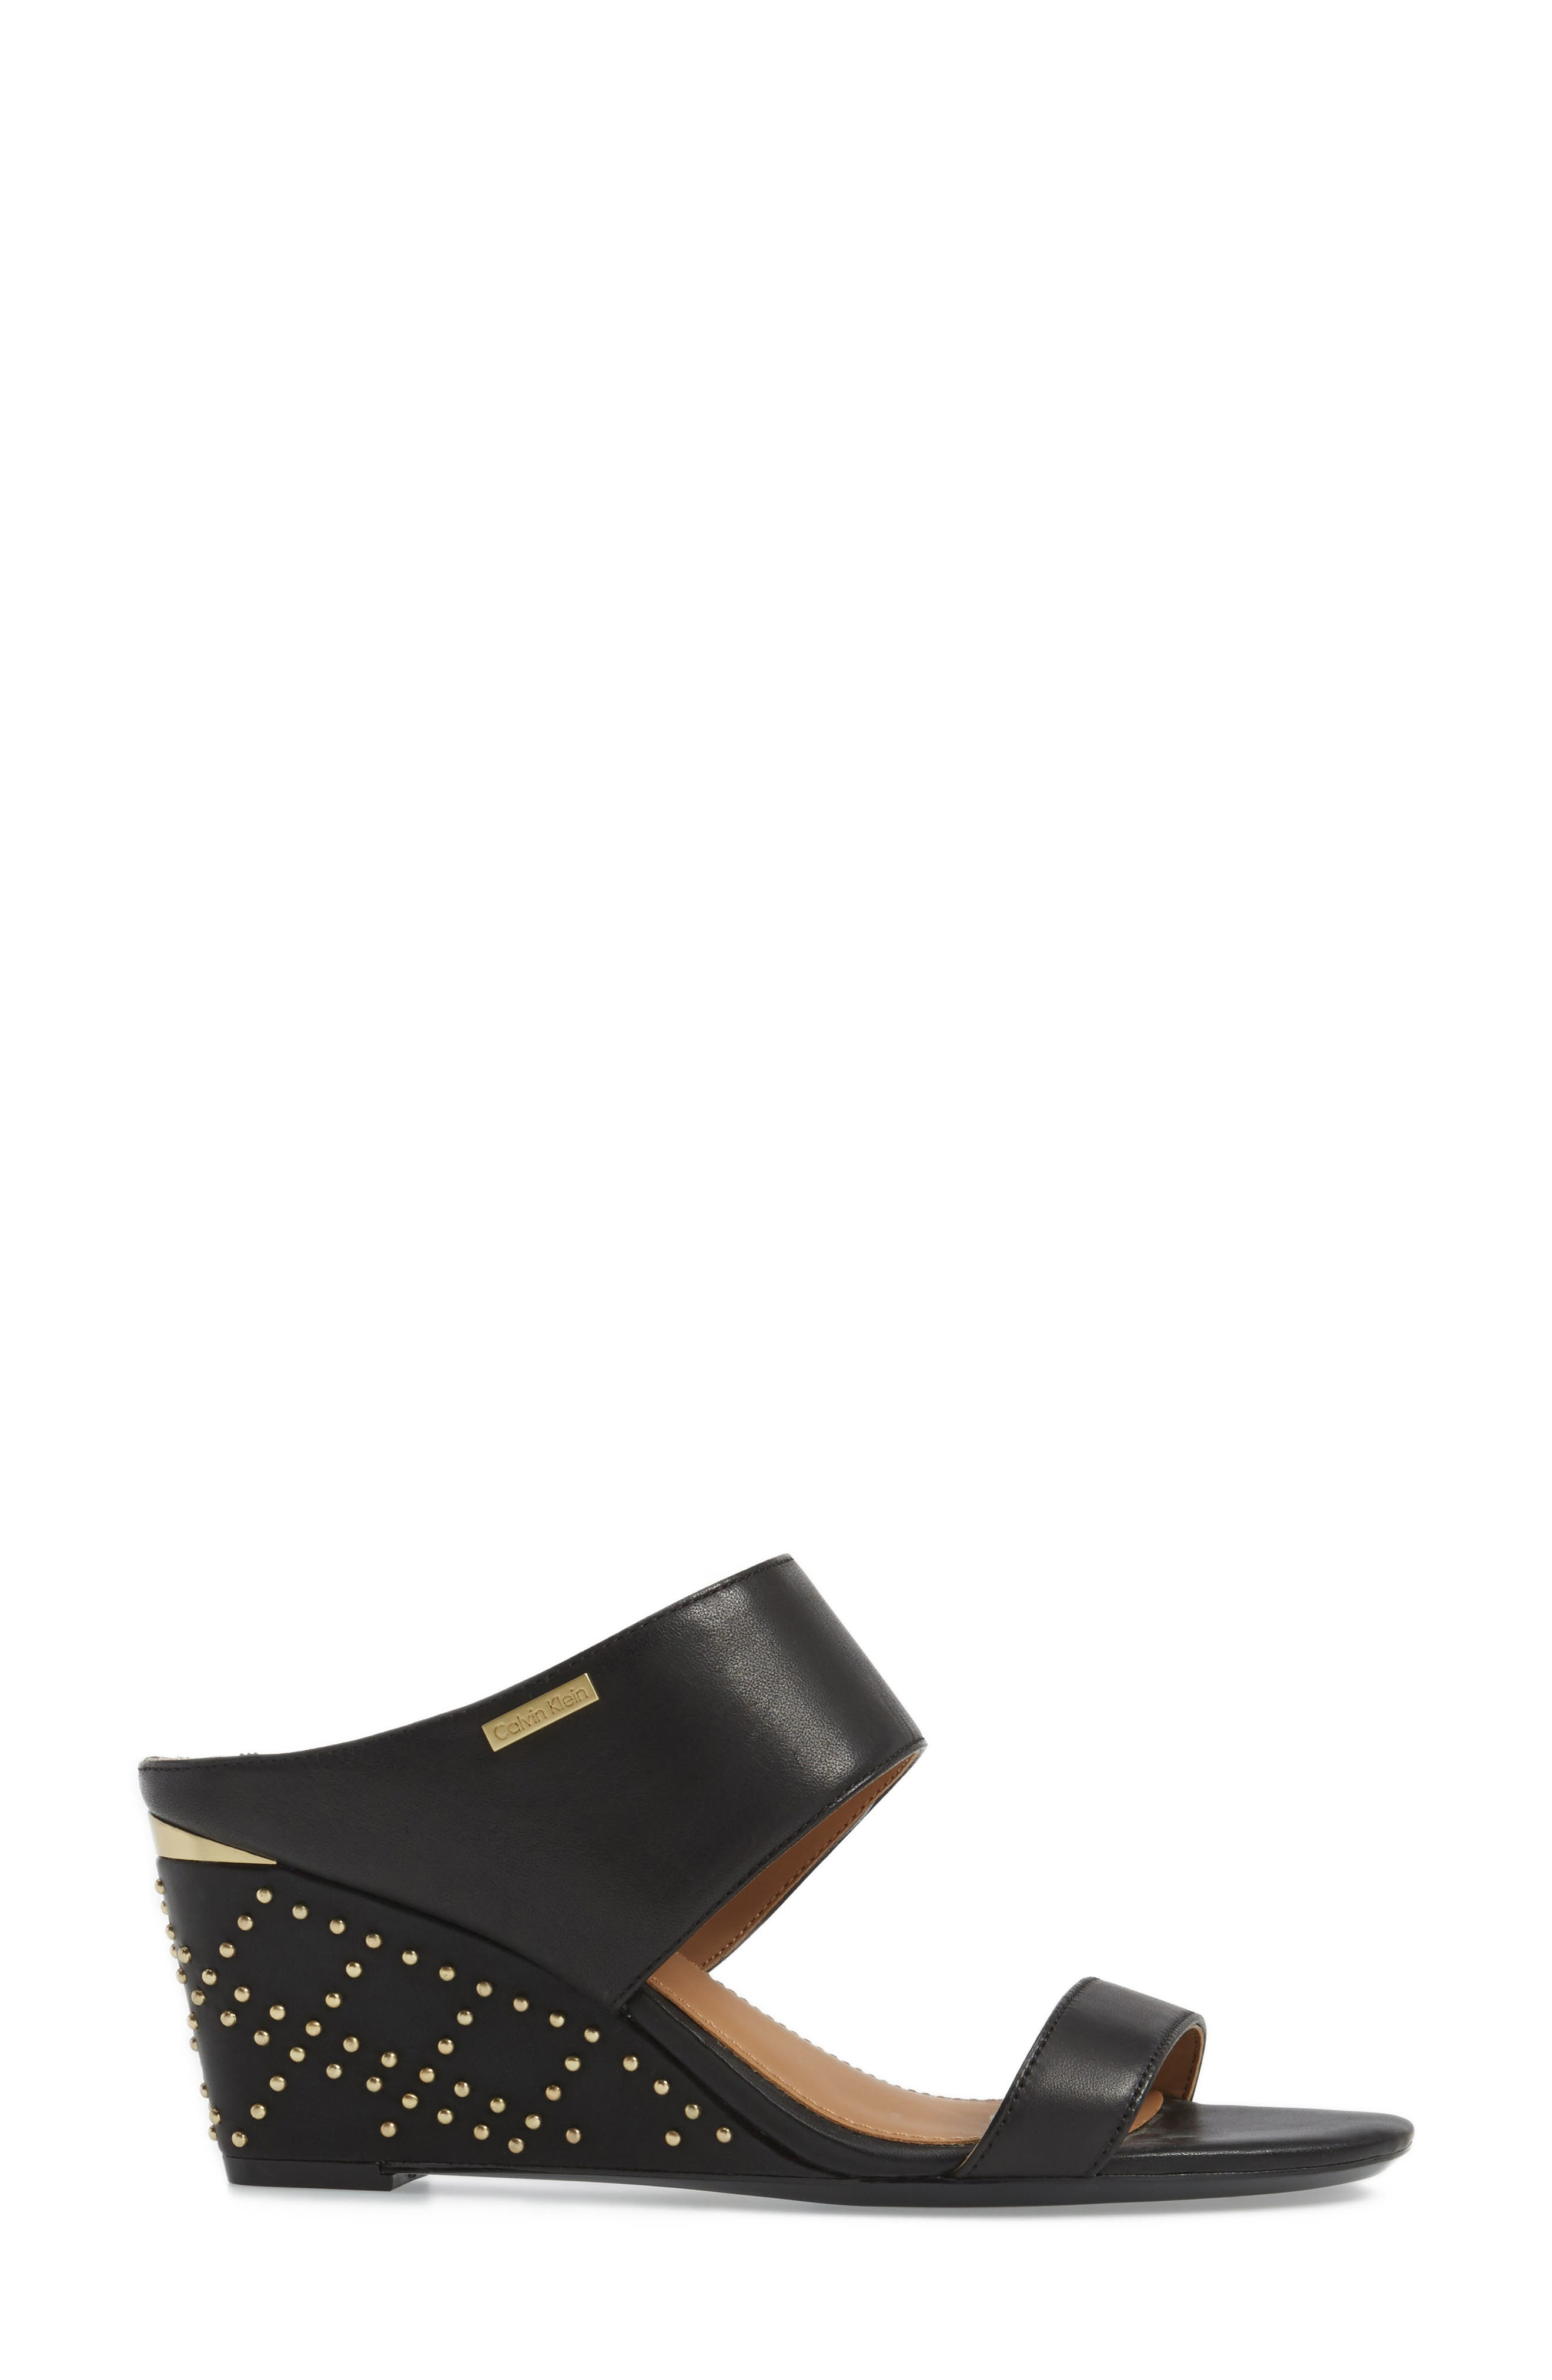 Phyllis Studded Wedge Sandal,                             Alternate thumbnail 3, color,                             Black Leather